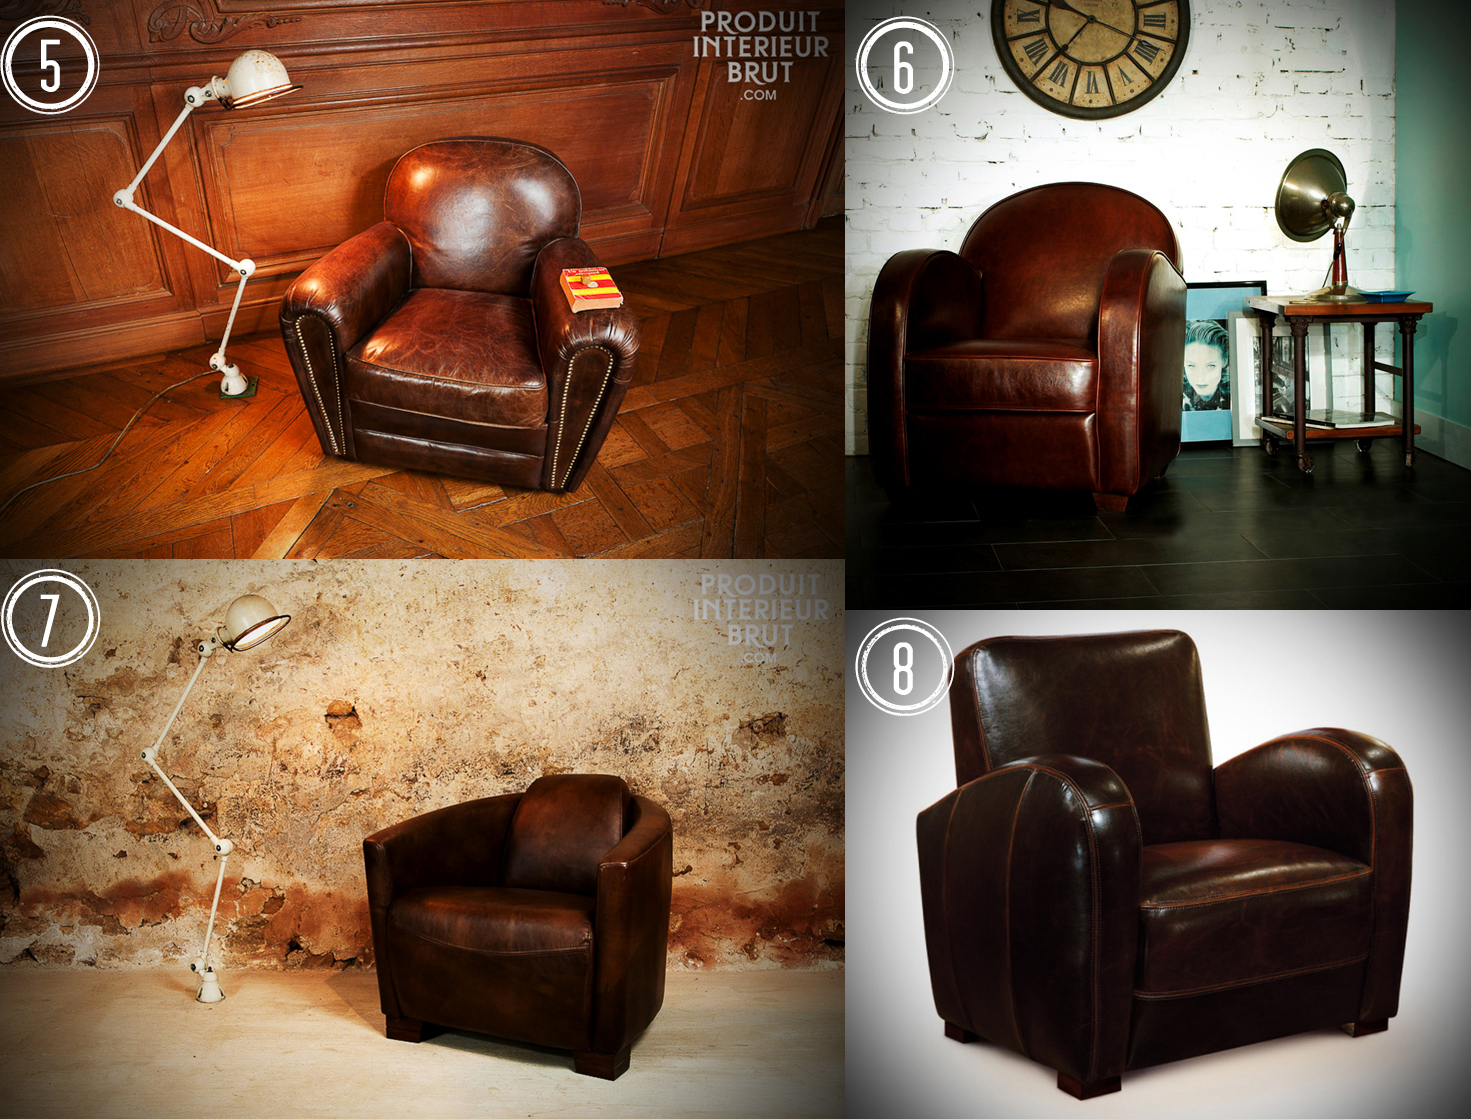 39 cause you need leather club seat - Produits interieur brut ...